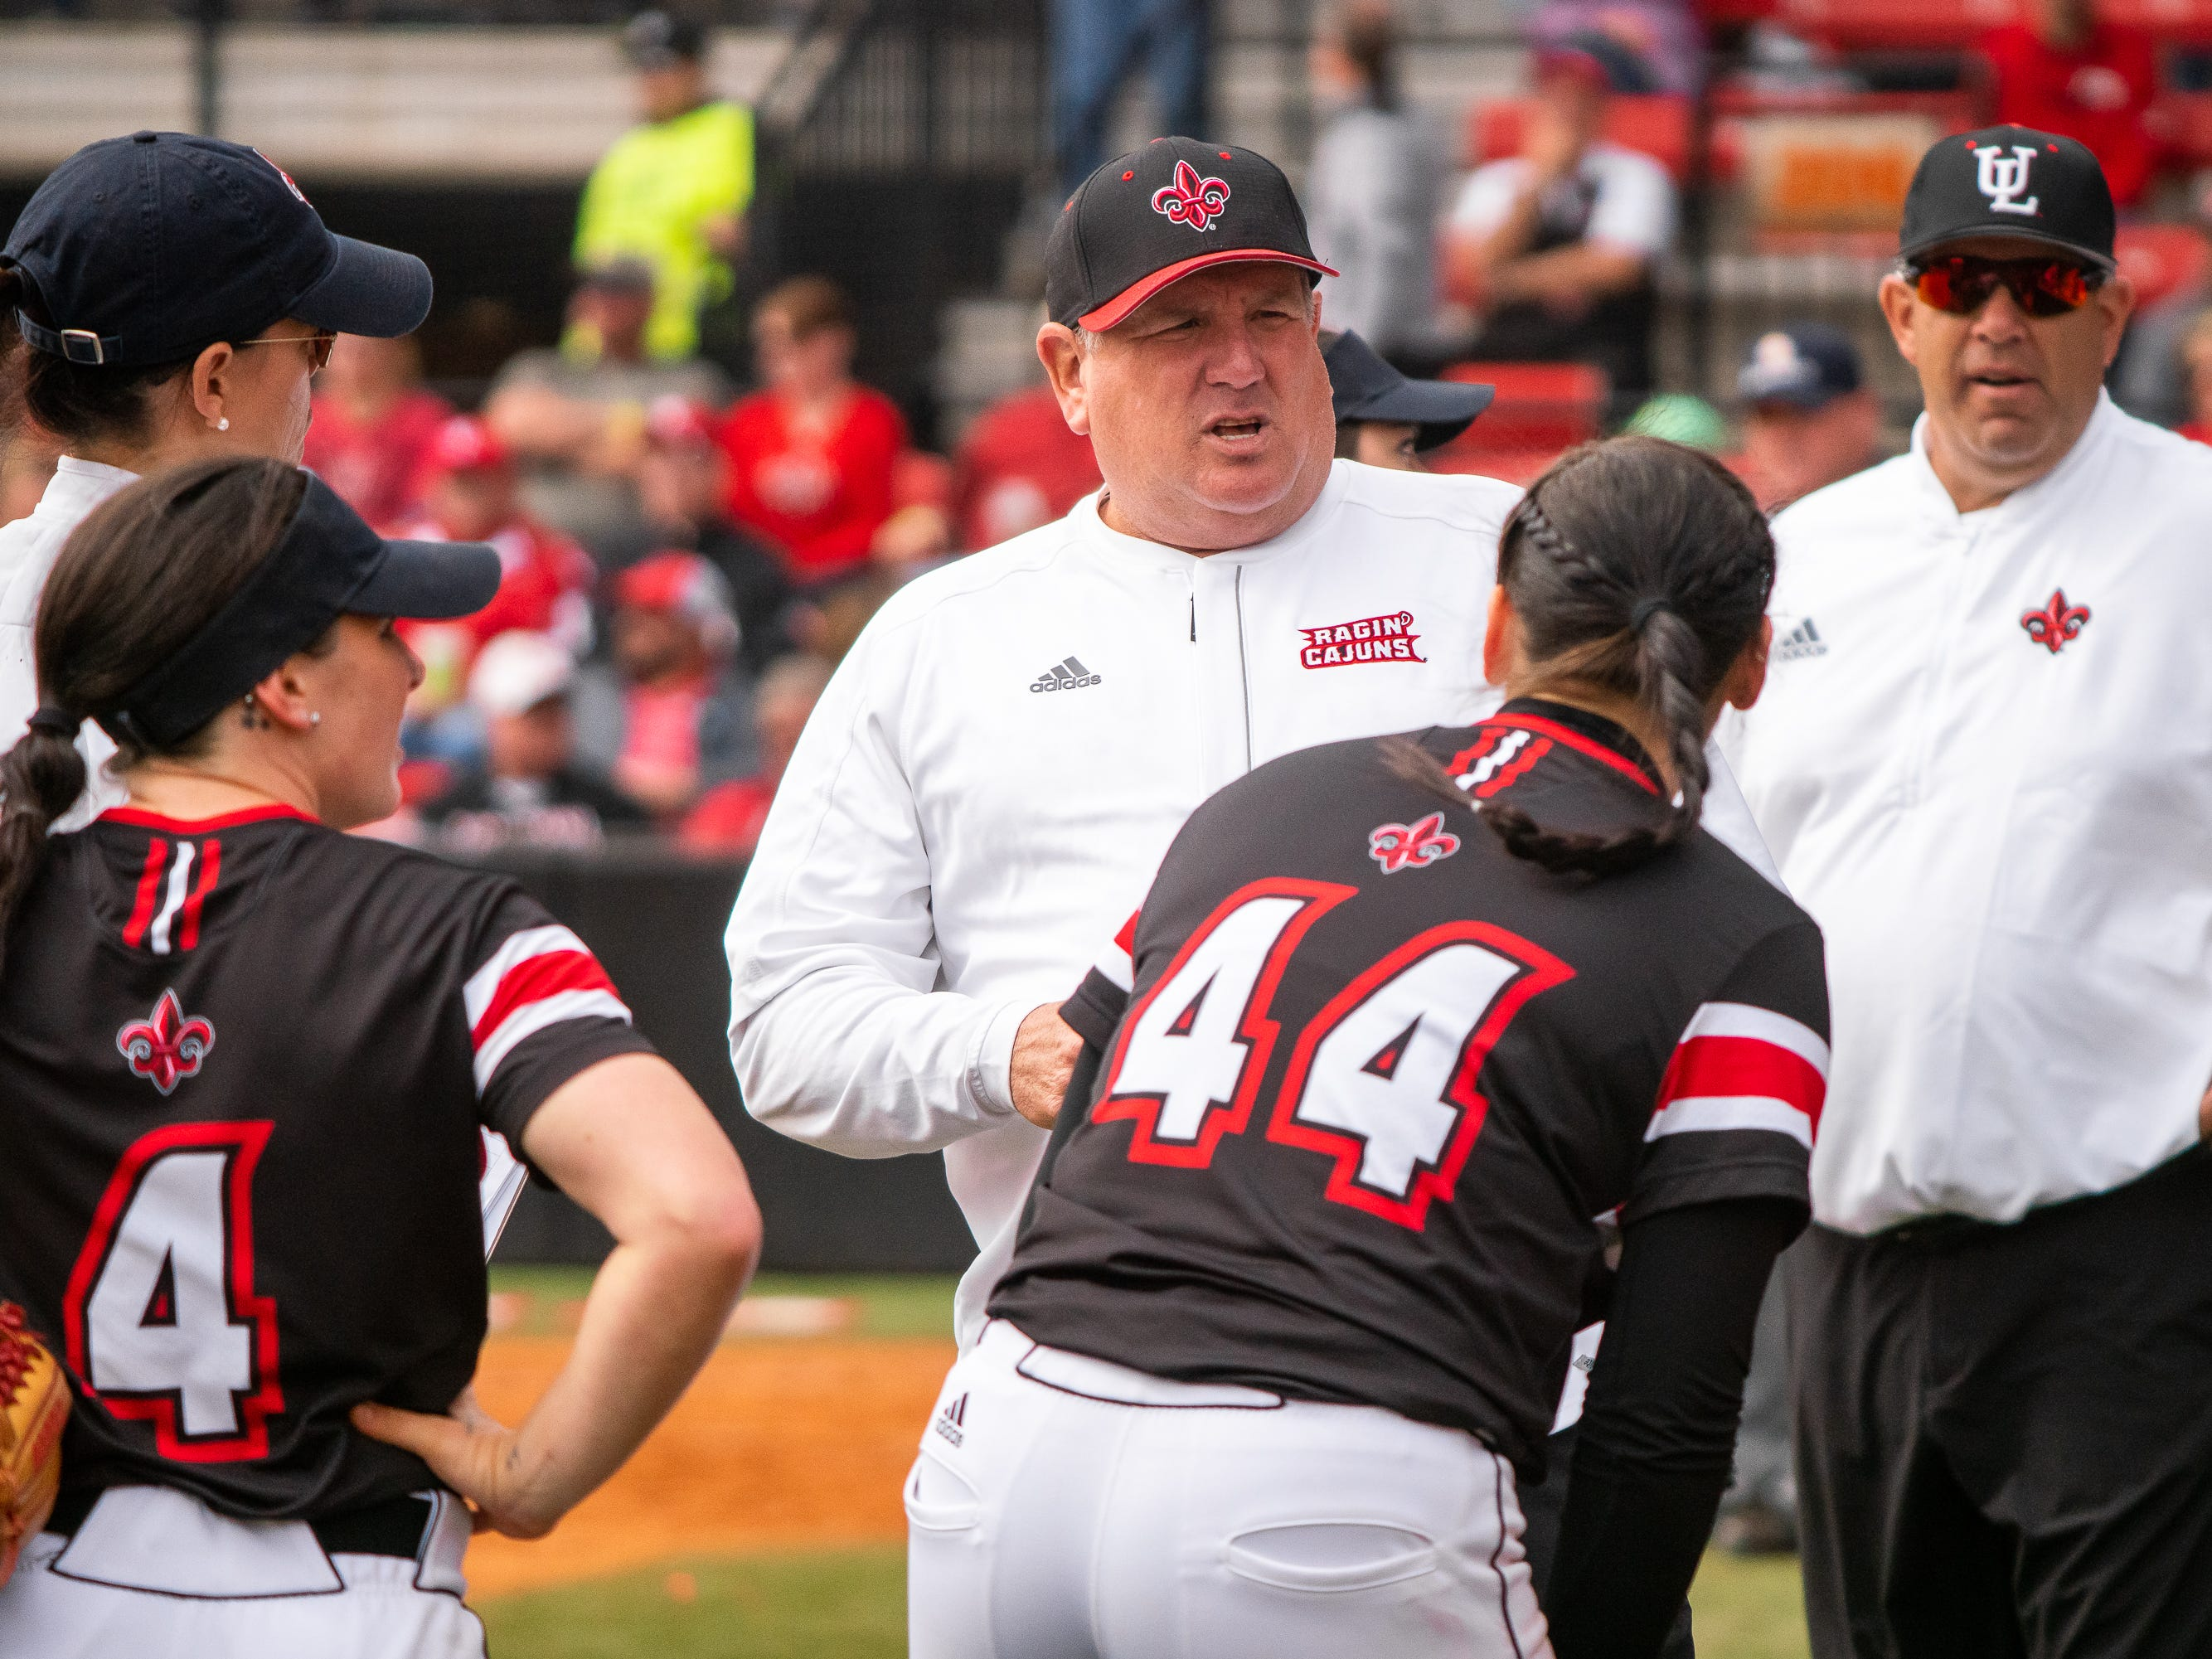 UL's head softball coach Gerry Glasco talks to his players in between innings as the Ragin' Cajuns take on the Troy Trojans at Yvette Girouard Field at Lamson Park on Saturday, March 16, 2019.